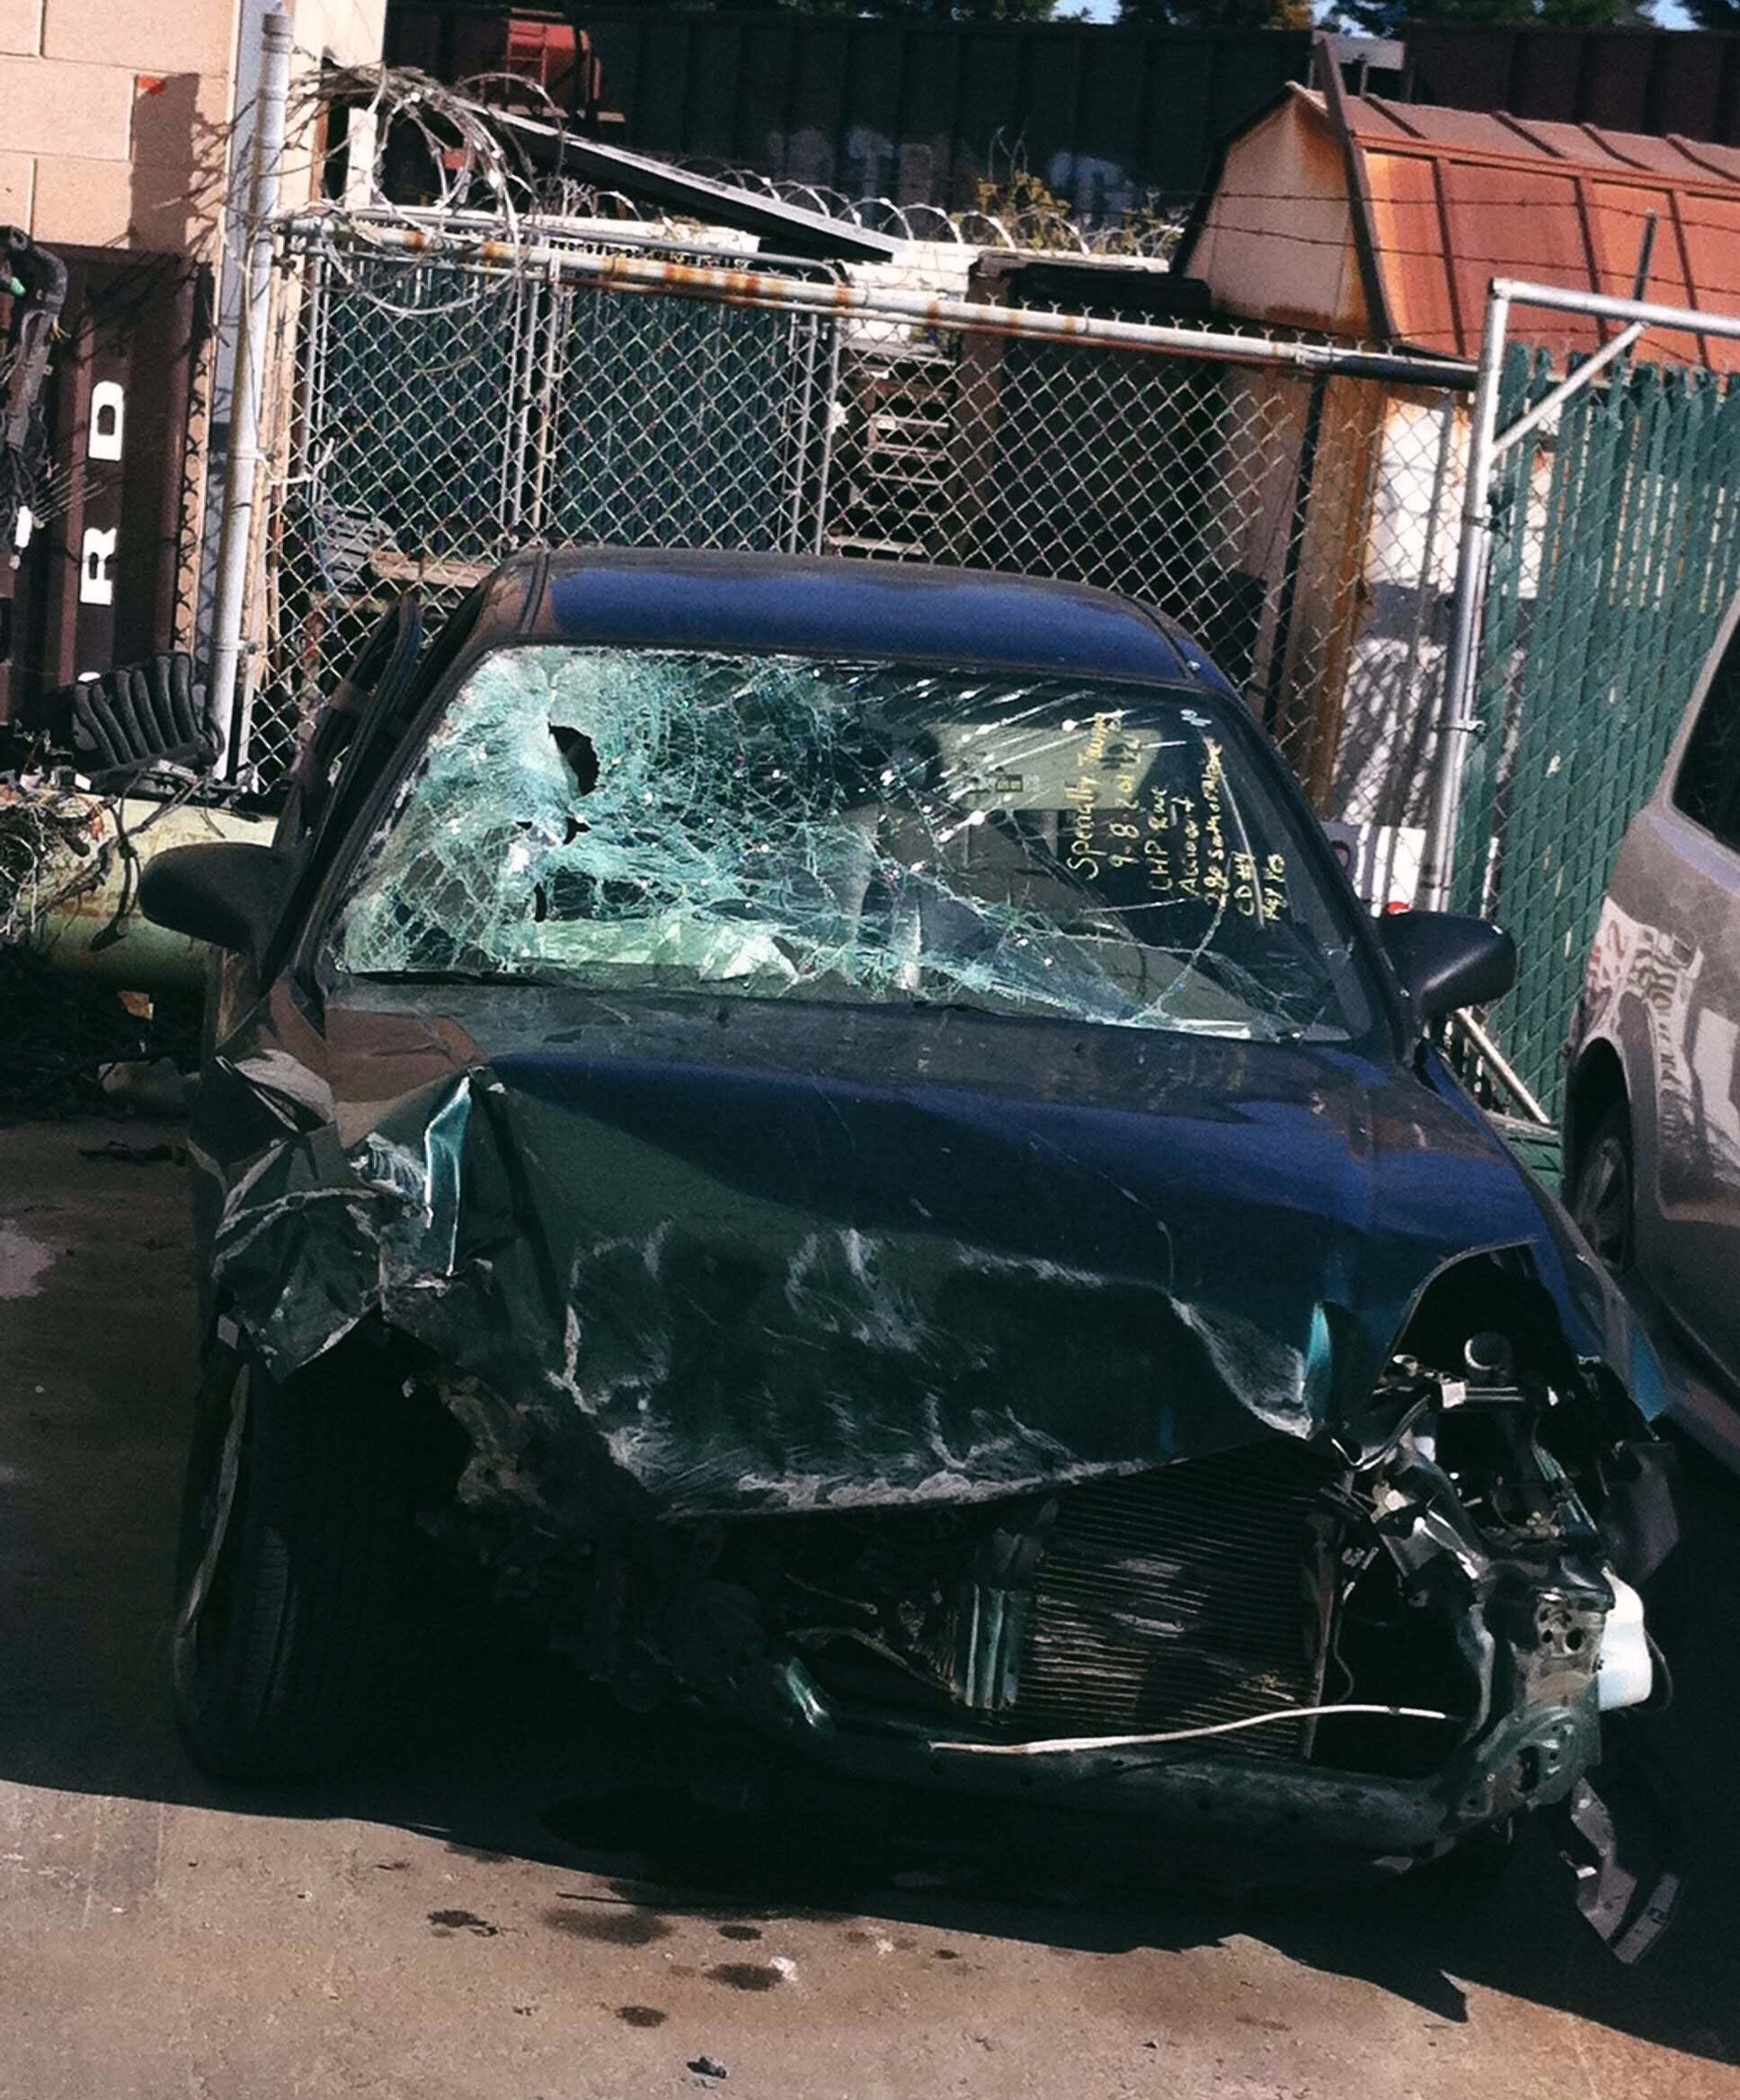 i survived the crash, though my first car, a 95' honda civic, did not